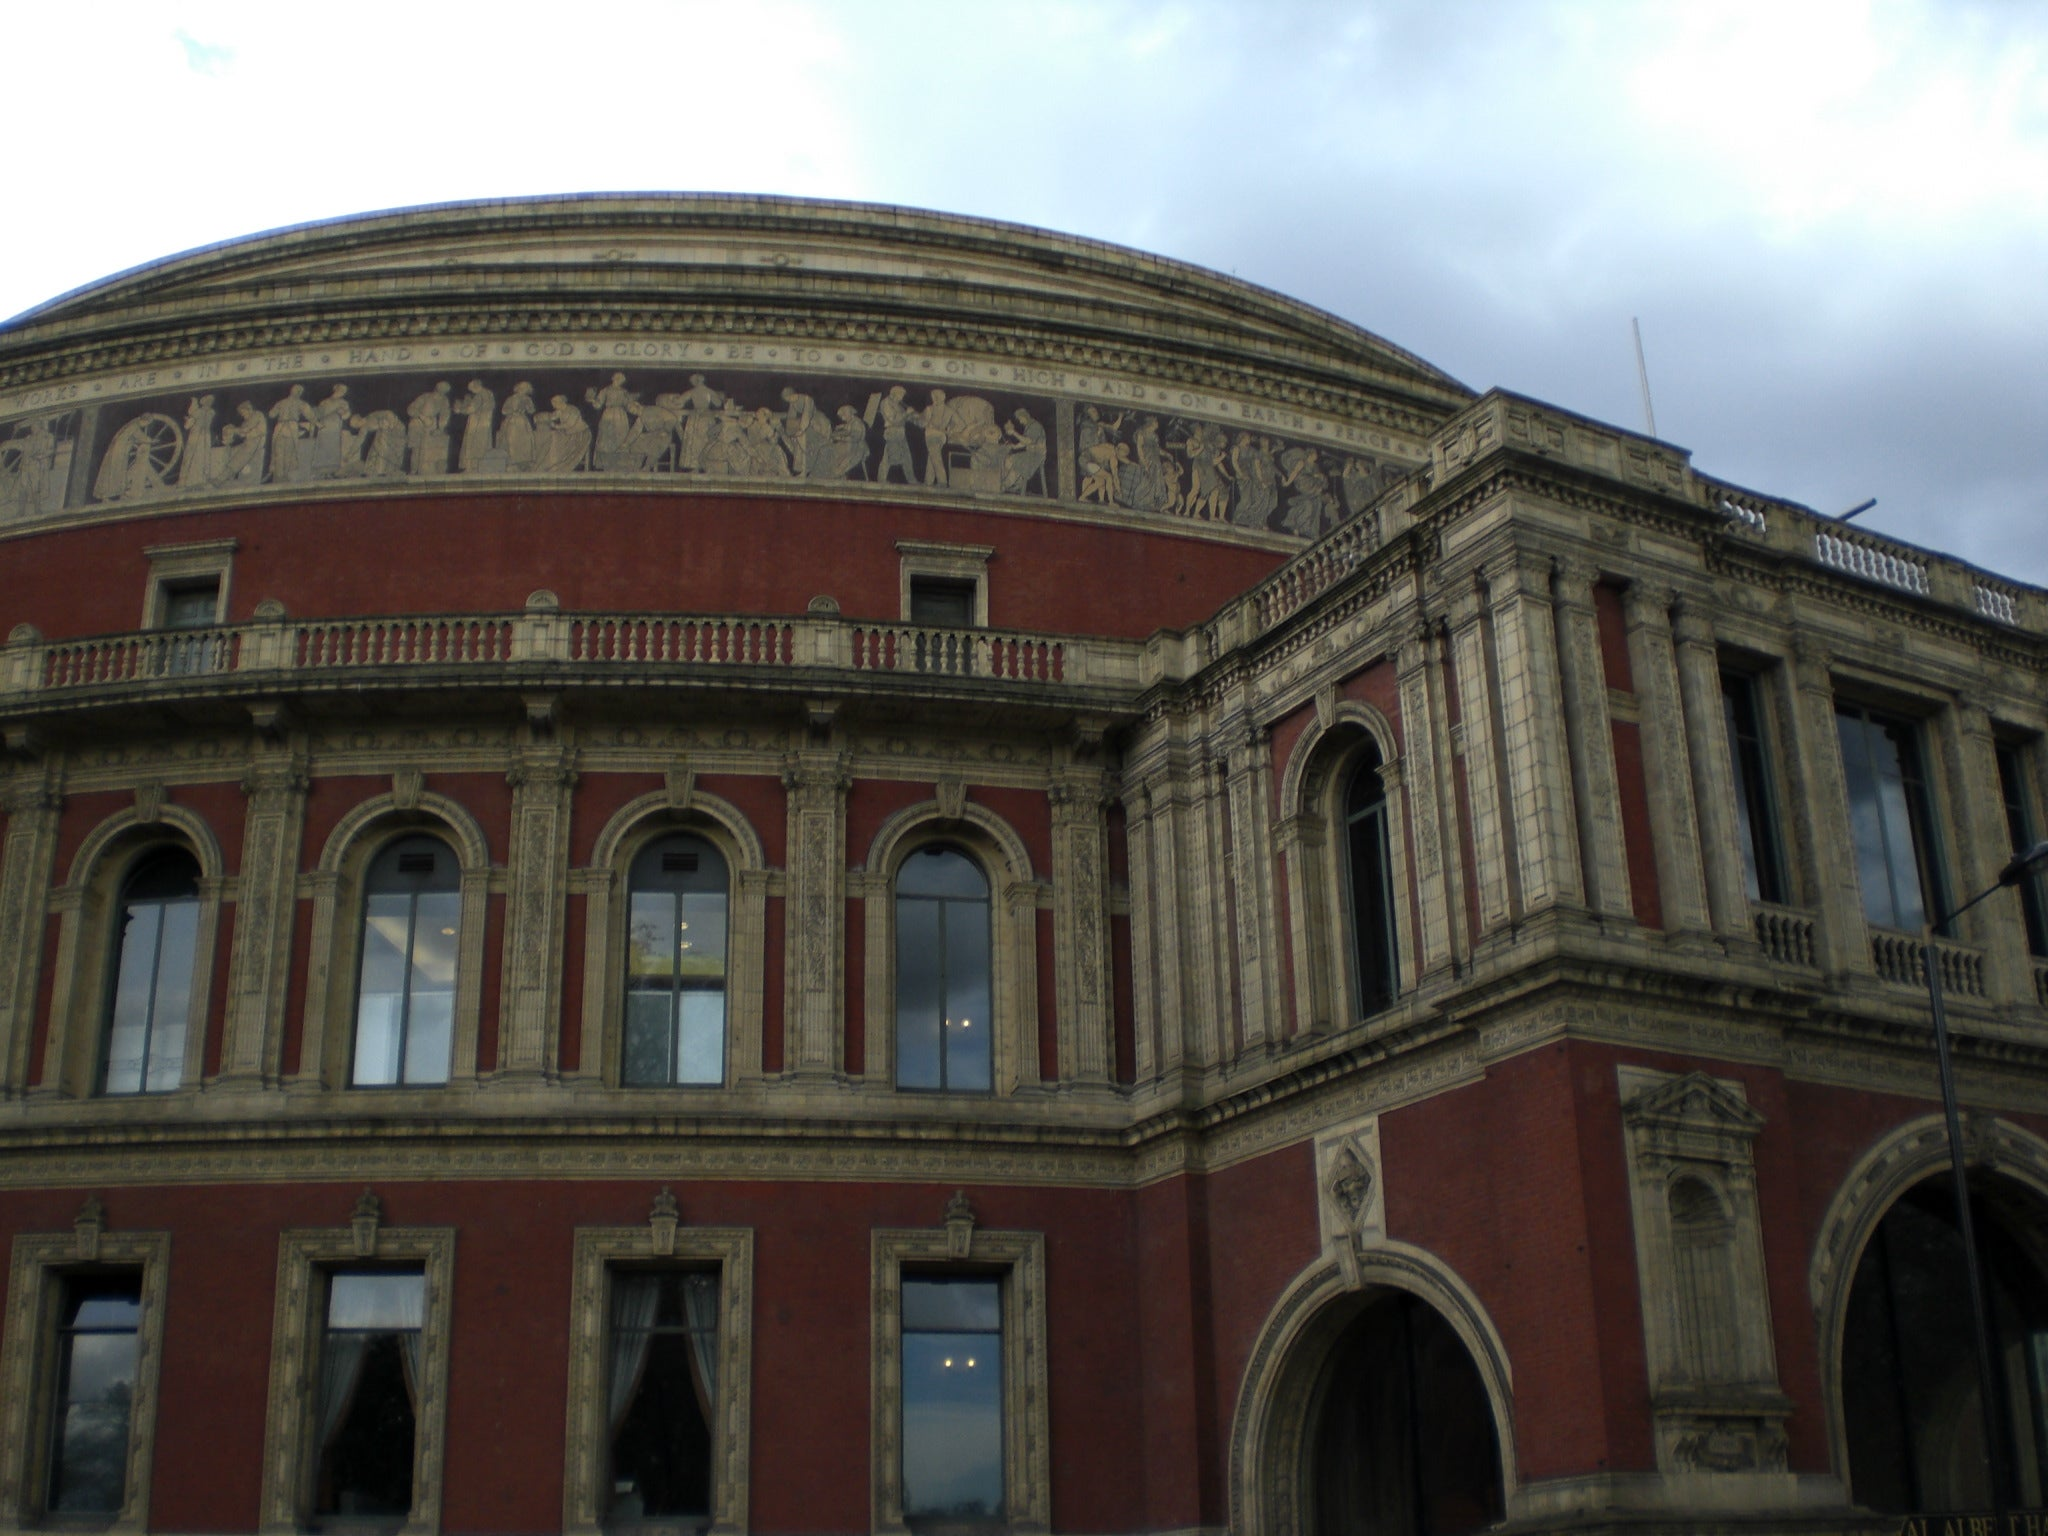 Turismo en Royal Albert Hall